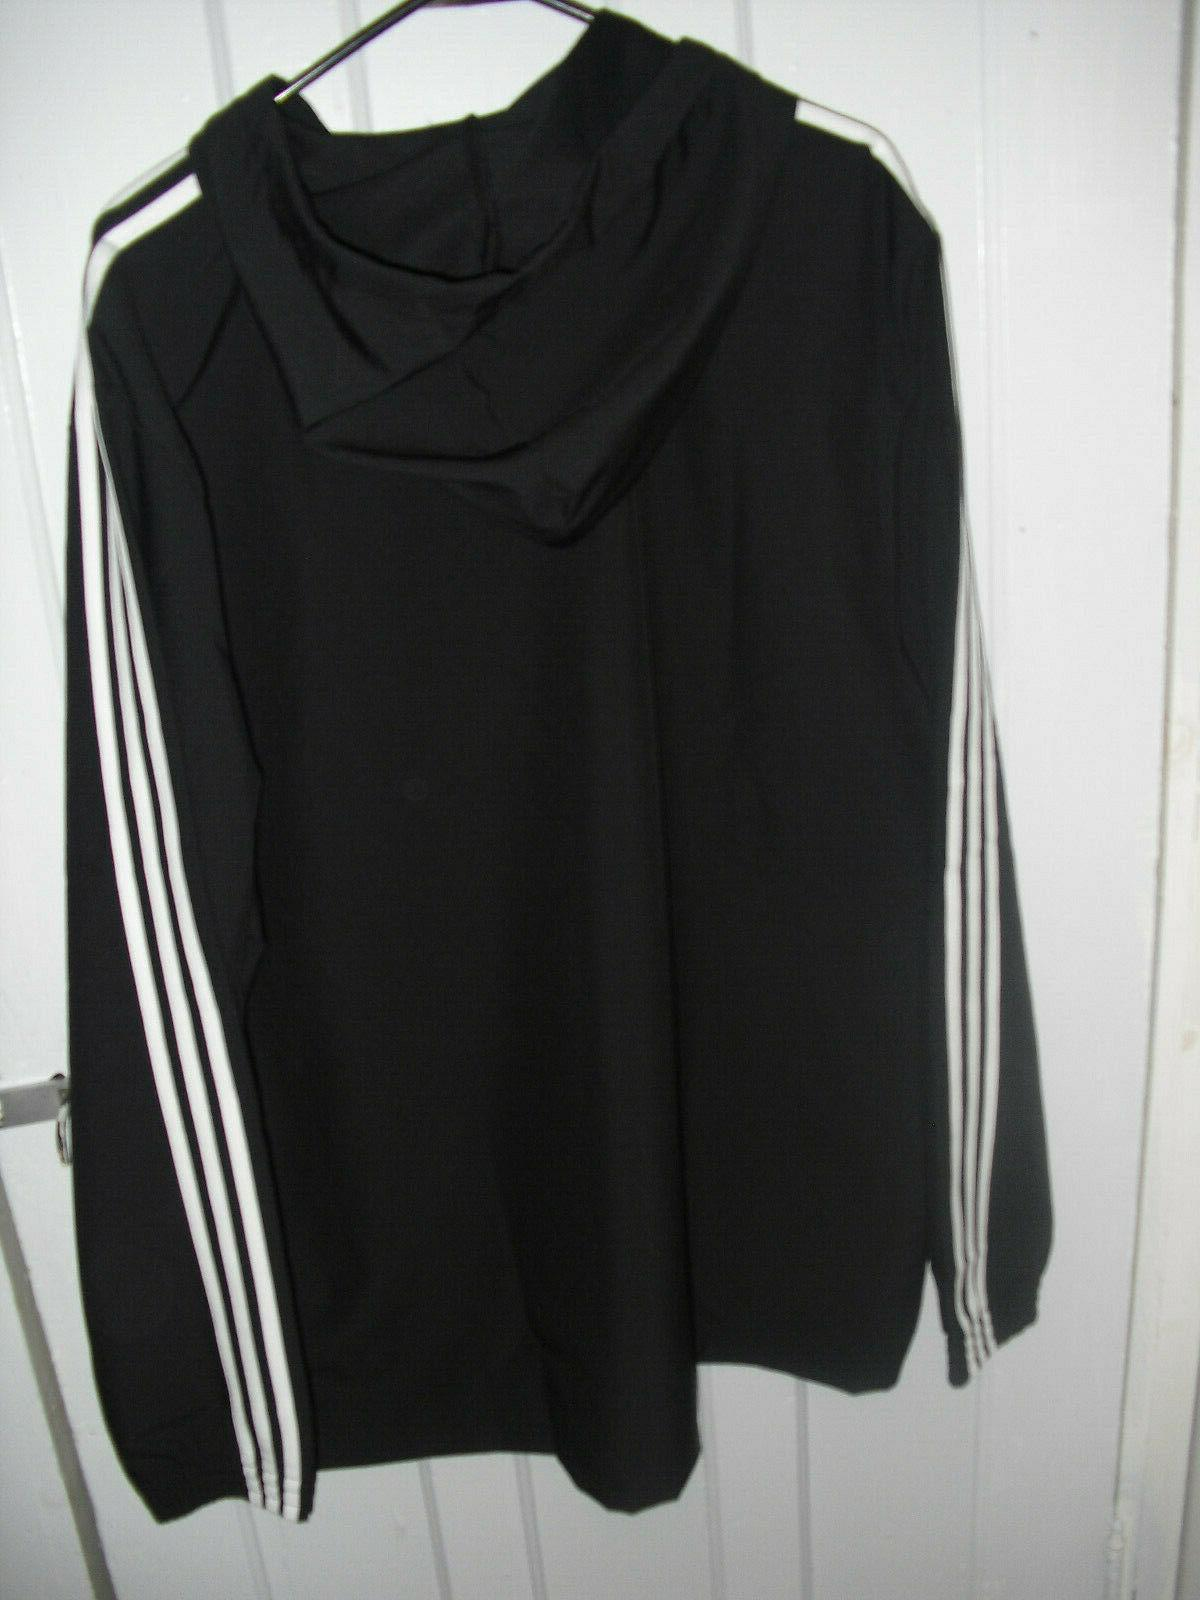 NEW Wind Jacket 3 Black/White NWT $65